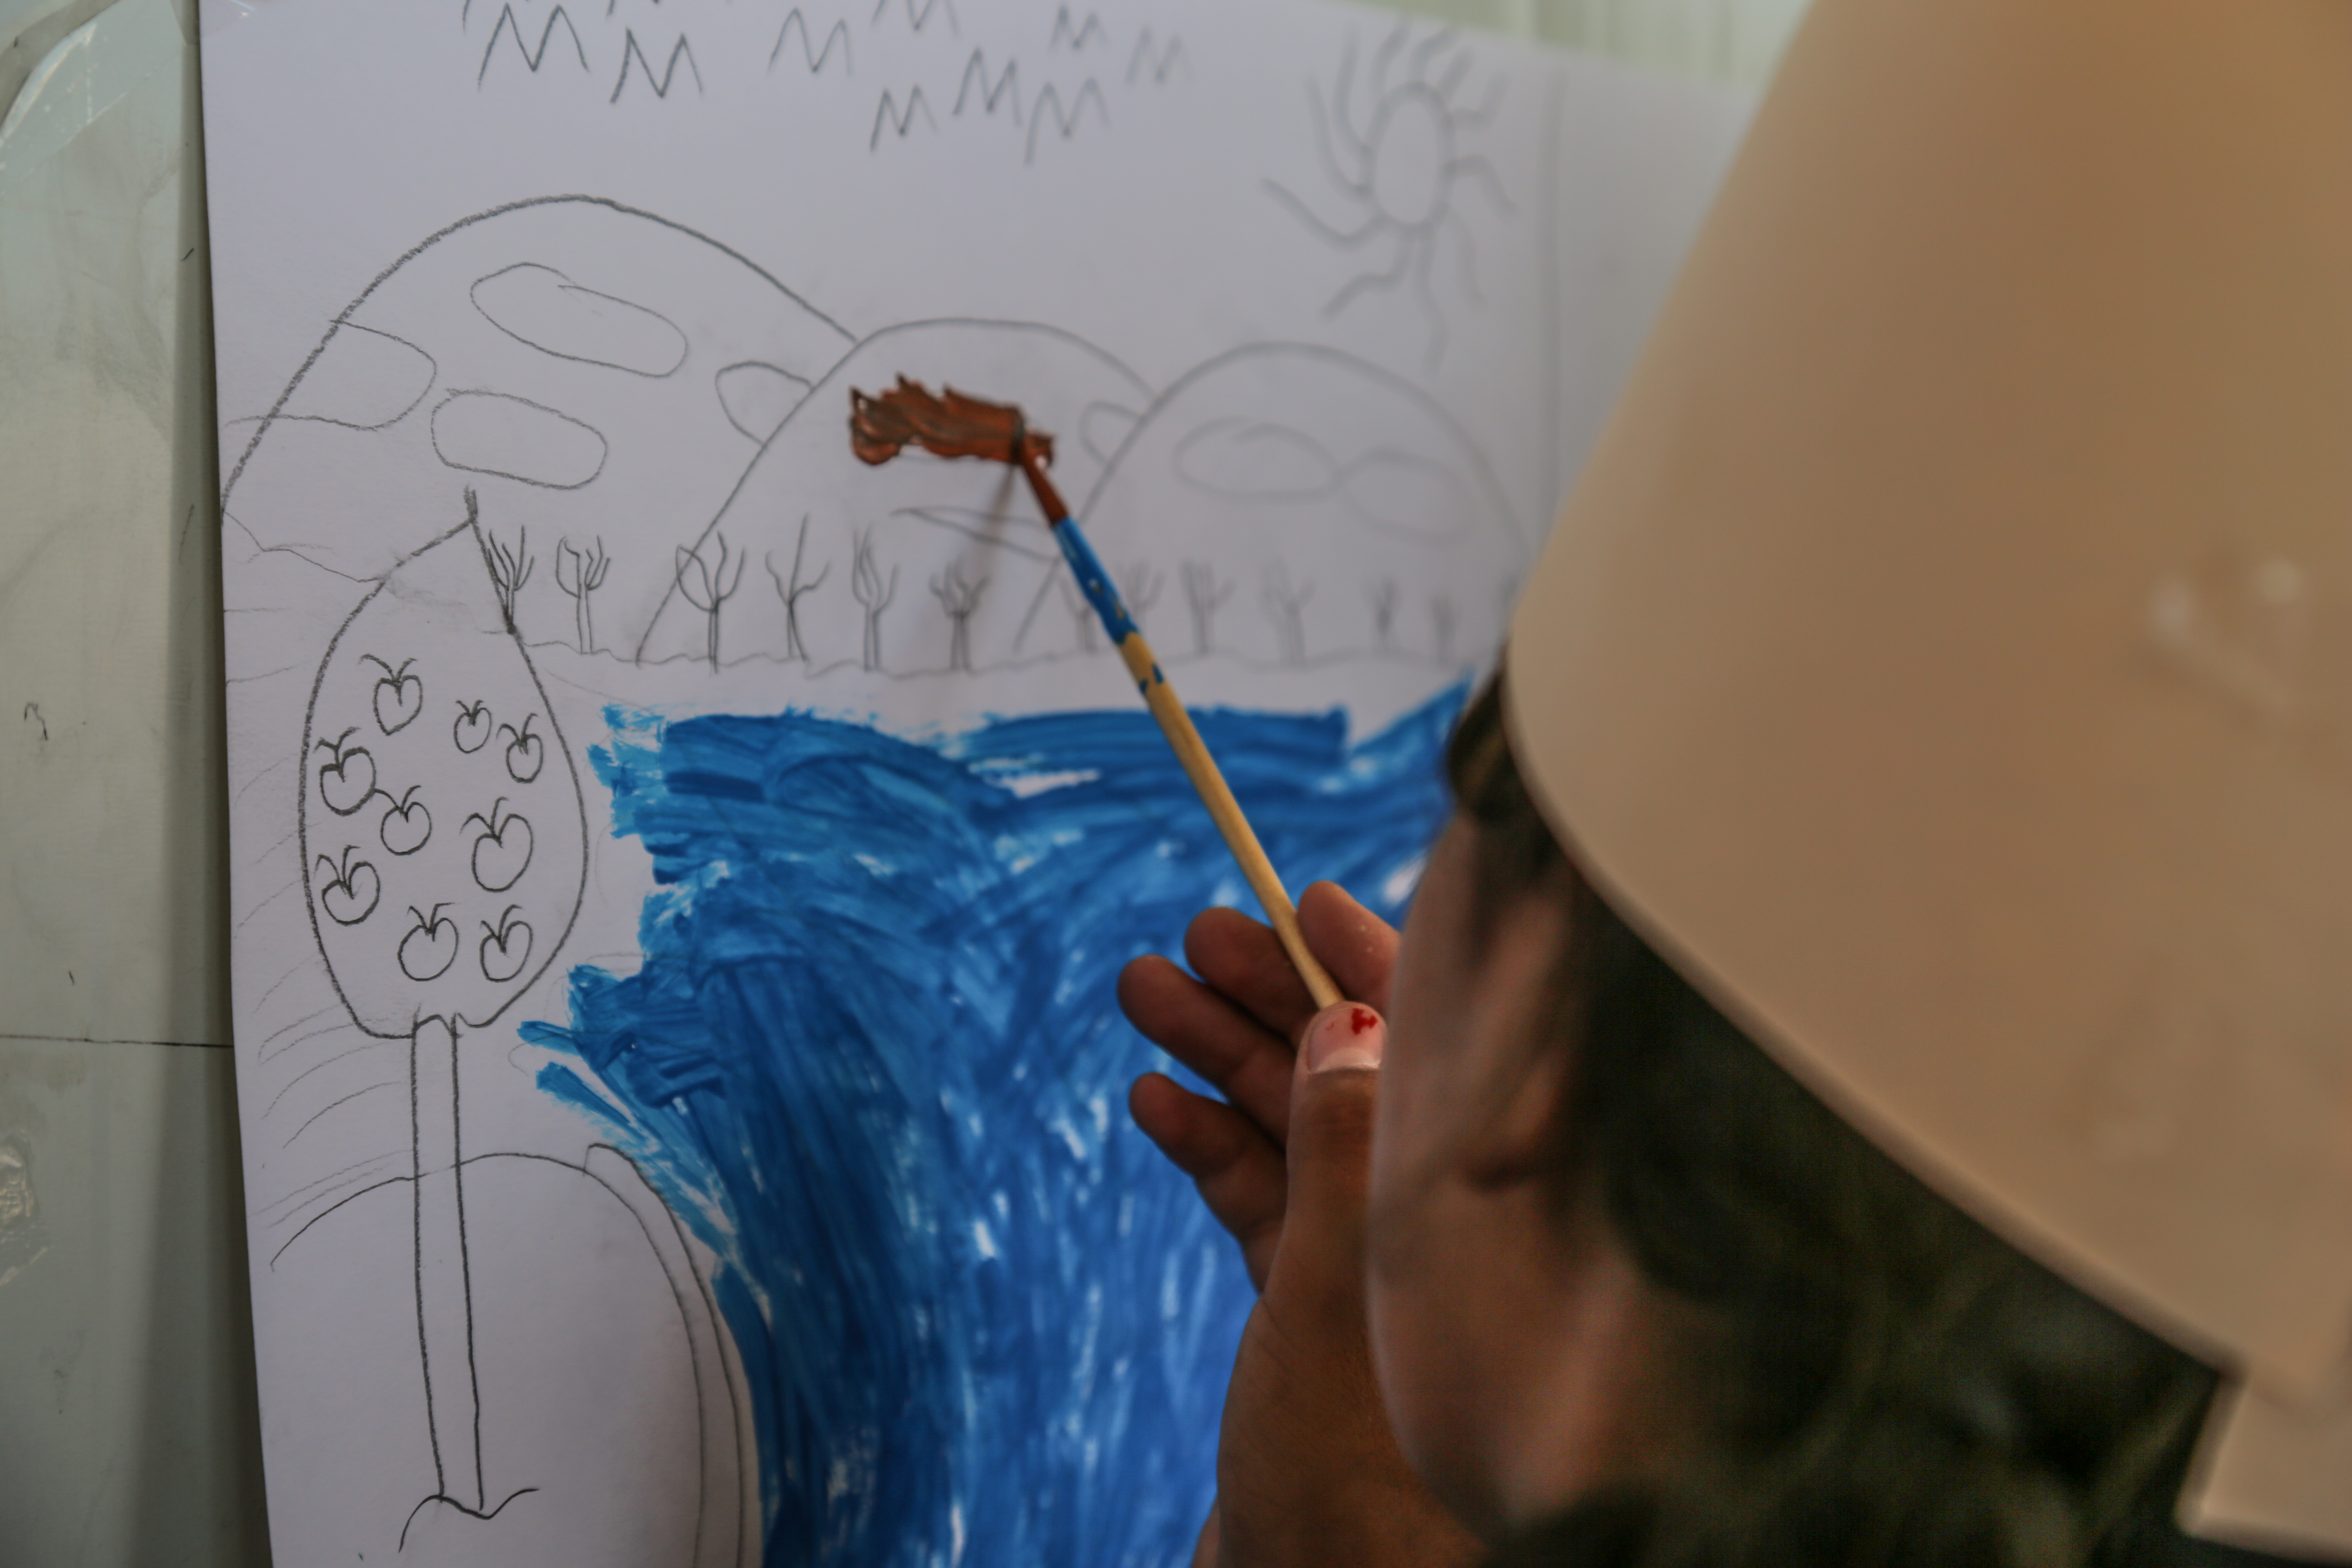 A displaced Iraqi child at IOM's psychosocial center at Chamakor camp, for displaced Iraqis, engaged in drawing activities.